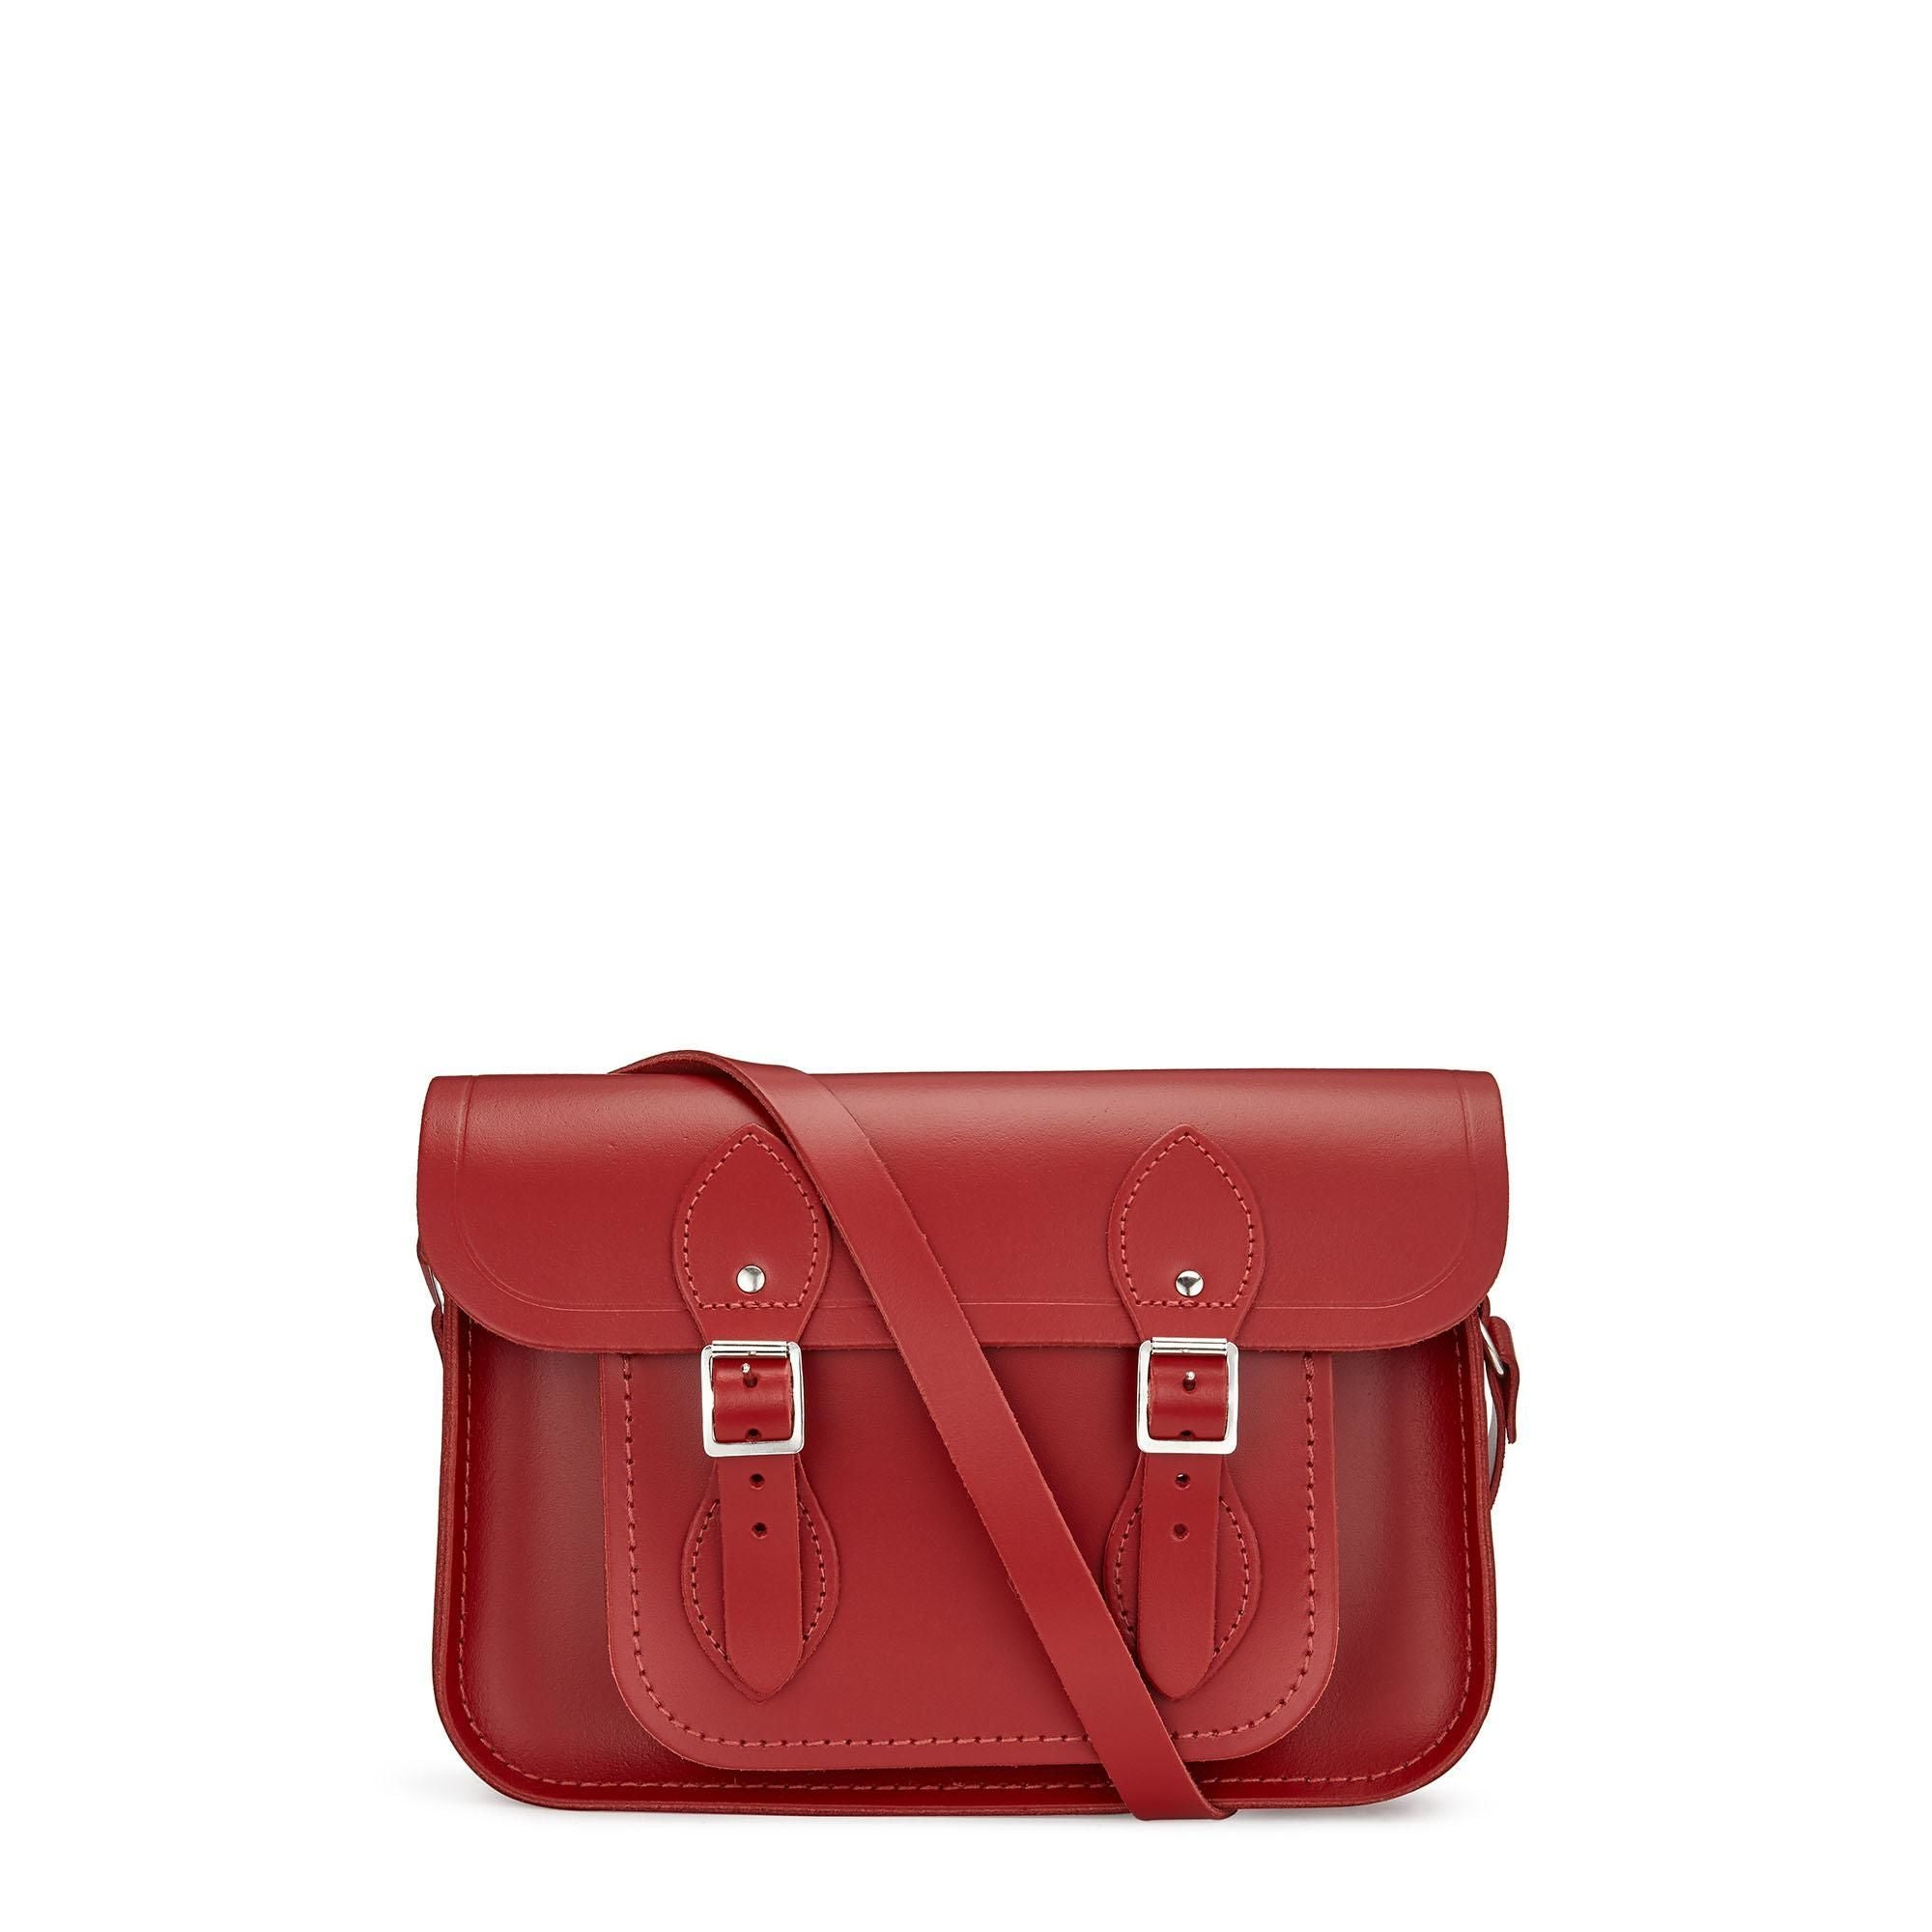 11 inch Classic Satchel in Leather - Red